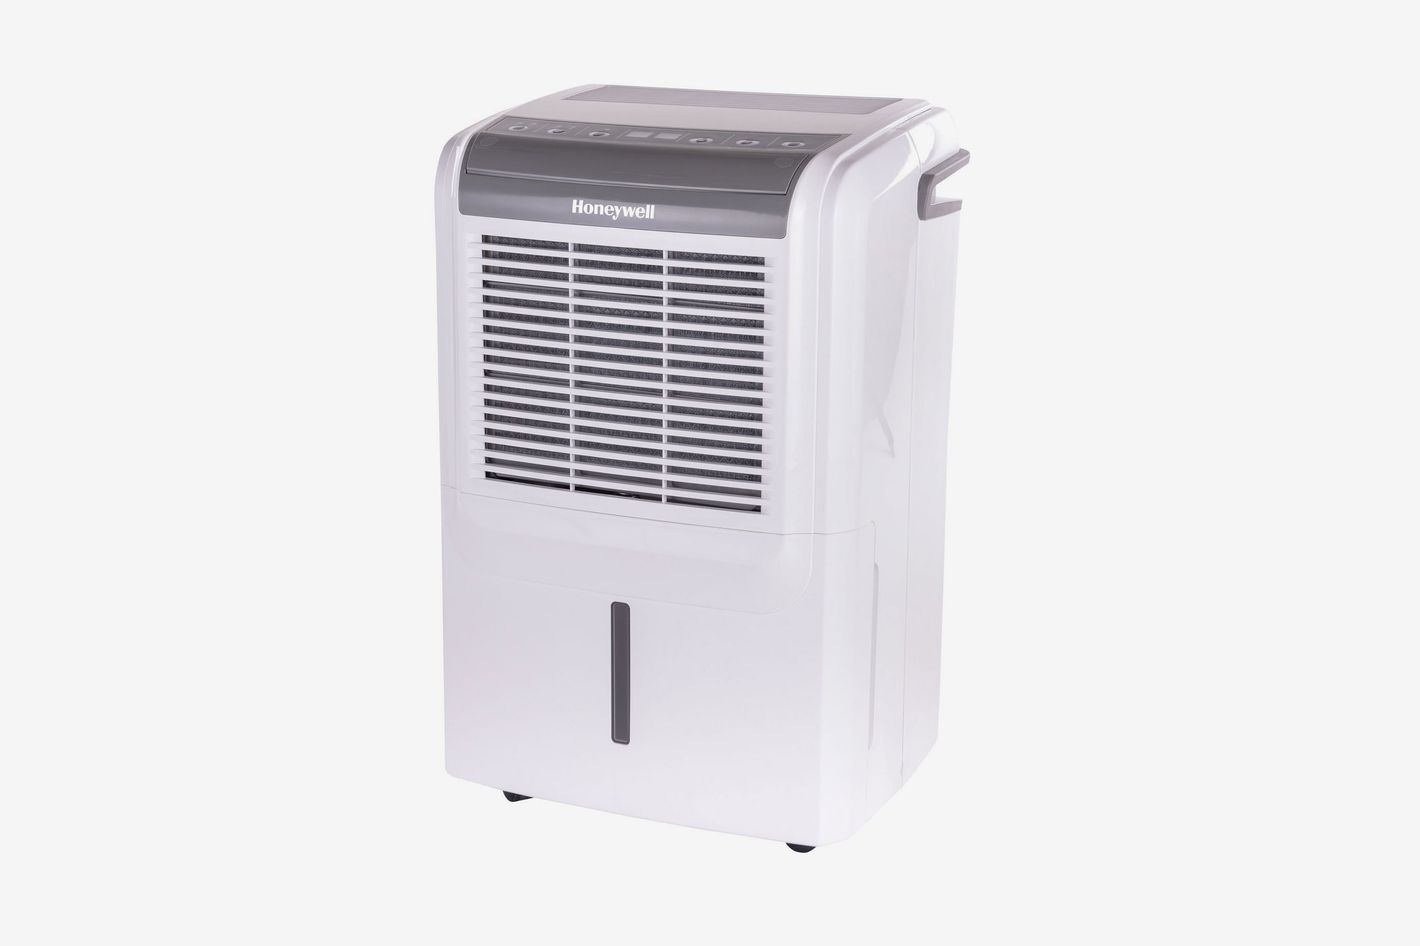 Honeywell DH50W Energy Star 50 Pint Dehumidifier